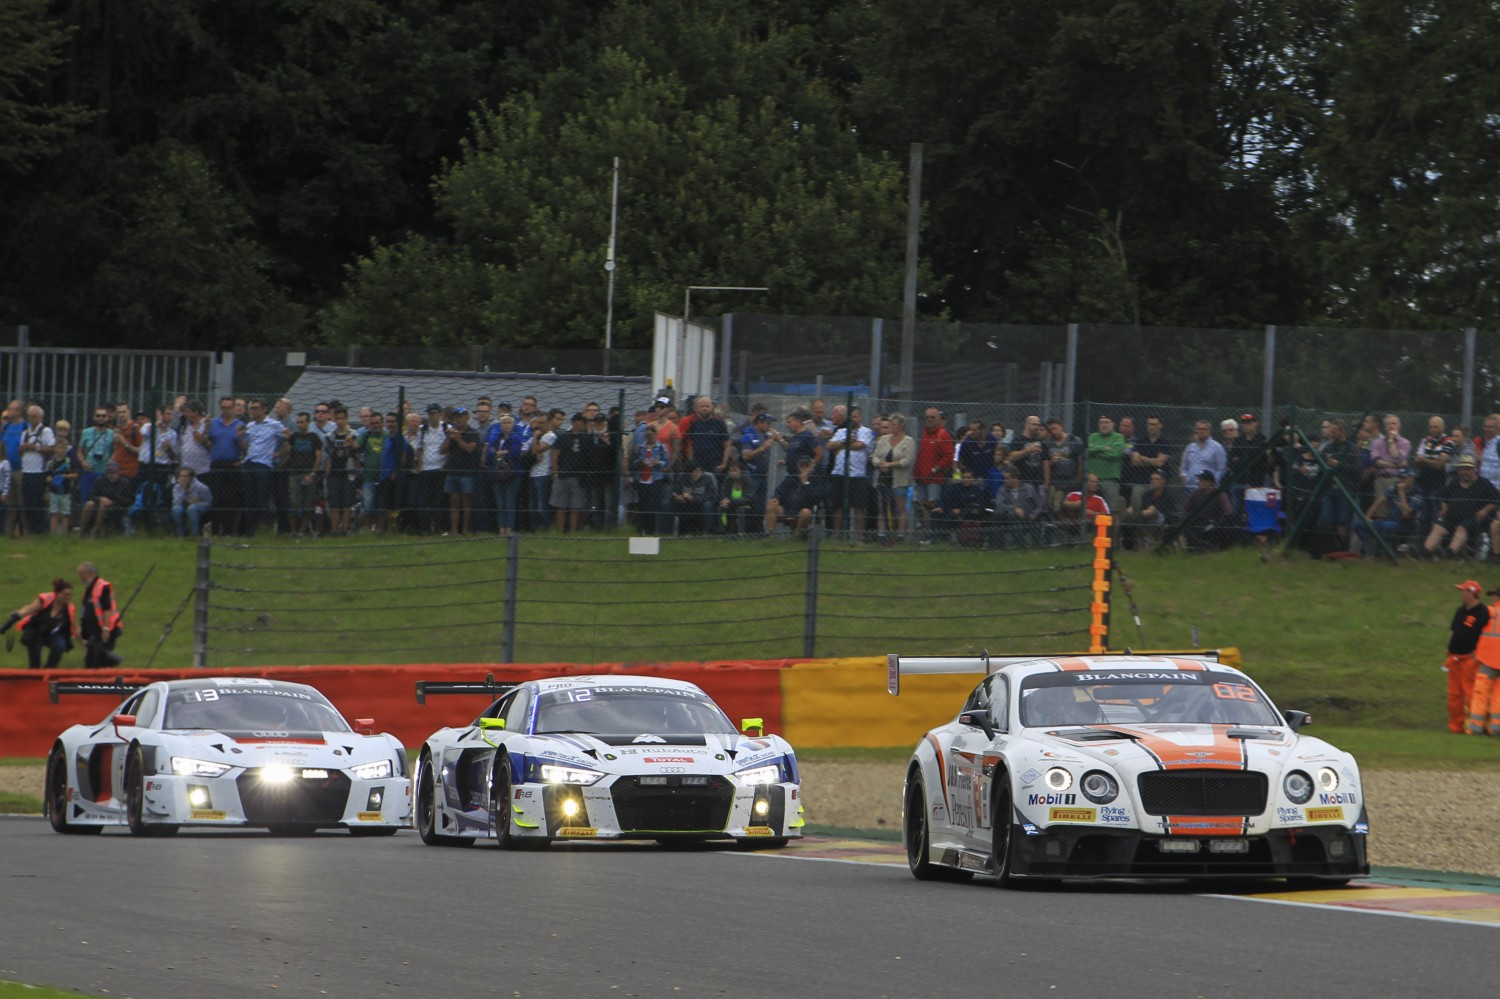 #30 TEAM PARKER RACING (GBR) BENTLEY CONTINENTAL GT3 DEREK PIERCE (GBR) CHRIS HARRIS (GBR) CARL ROSENBLAD (SWE) DAVID PEREL (ZAF) | VISION SPORT AGENCY